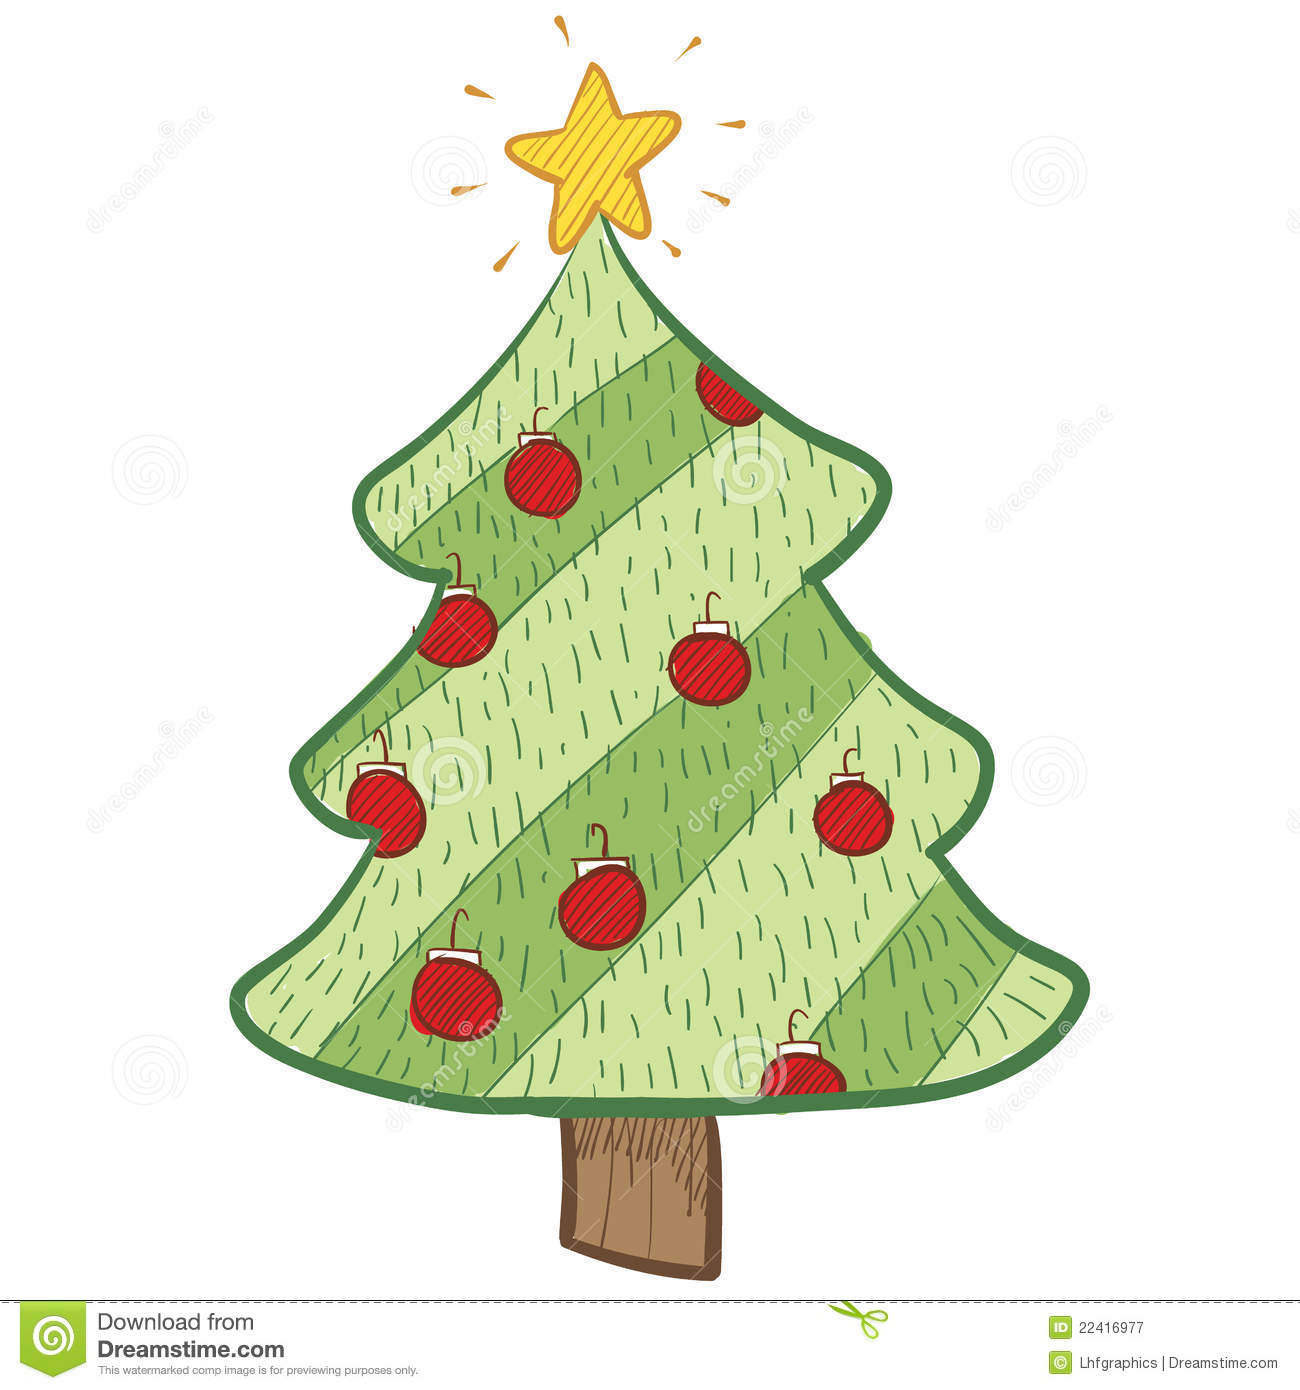 Colorful Christmas Tree Drawing Stock Vector - Illustration of ...